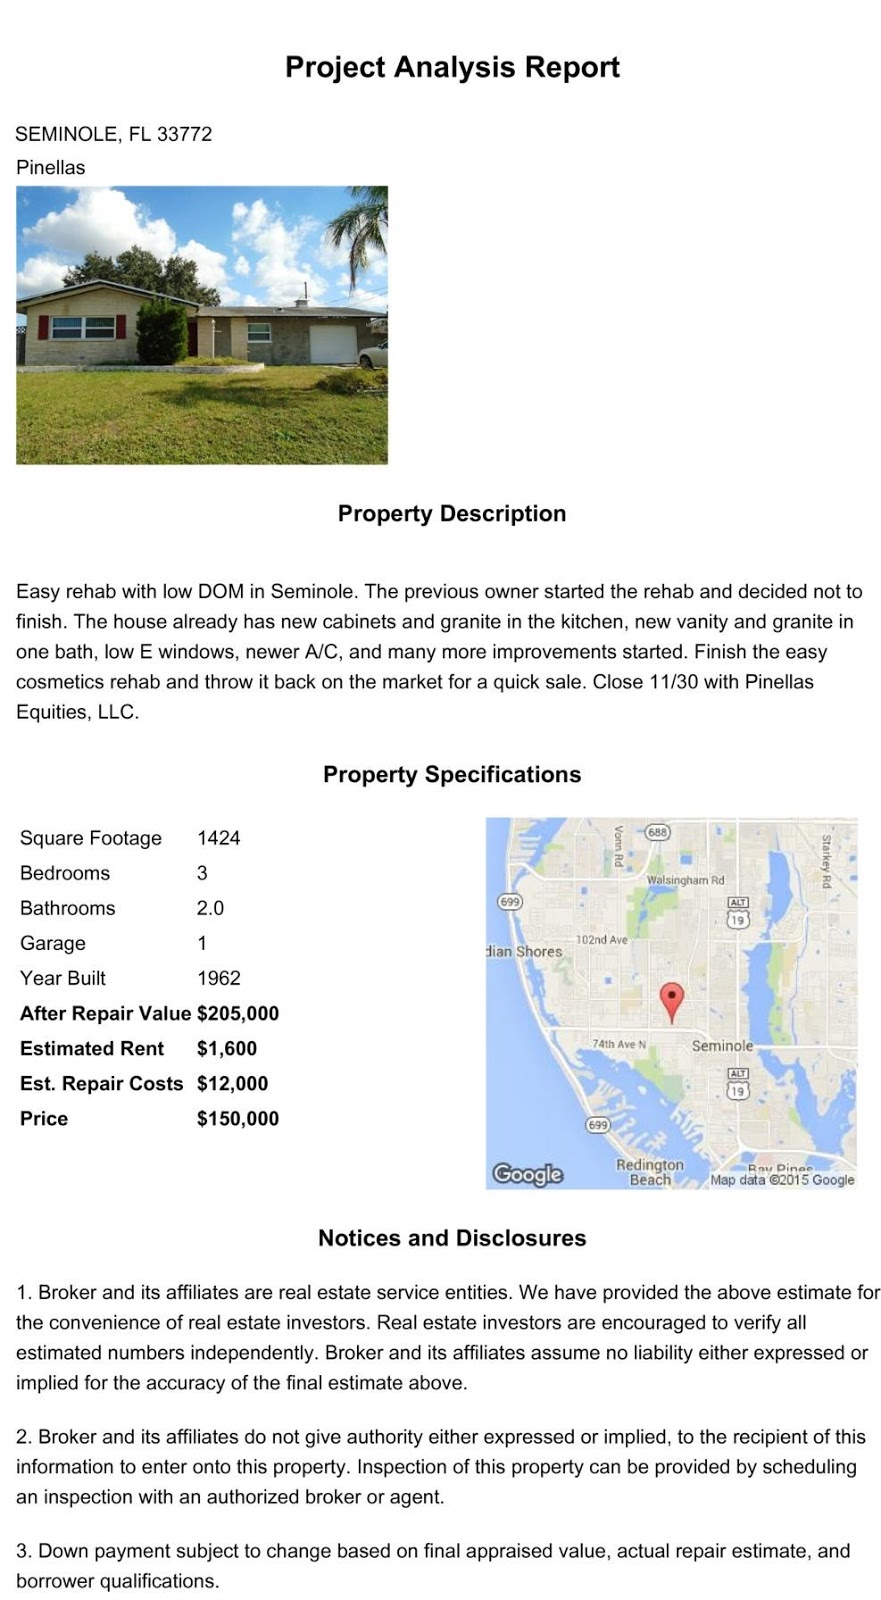 American Wholesale Property: Seminole Wholesale deal